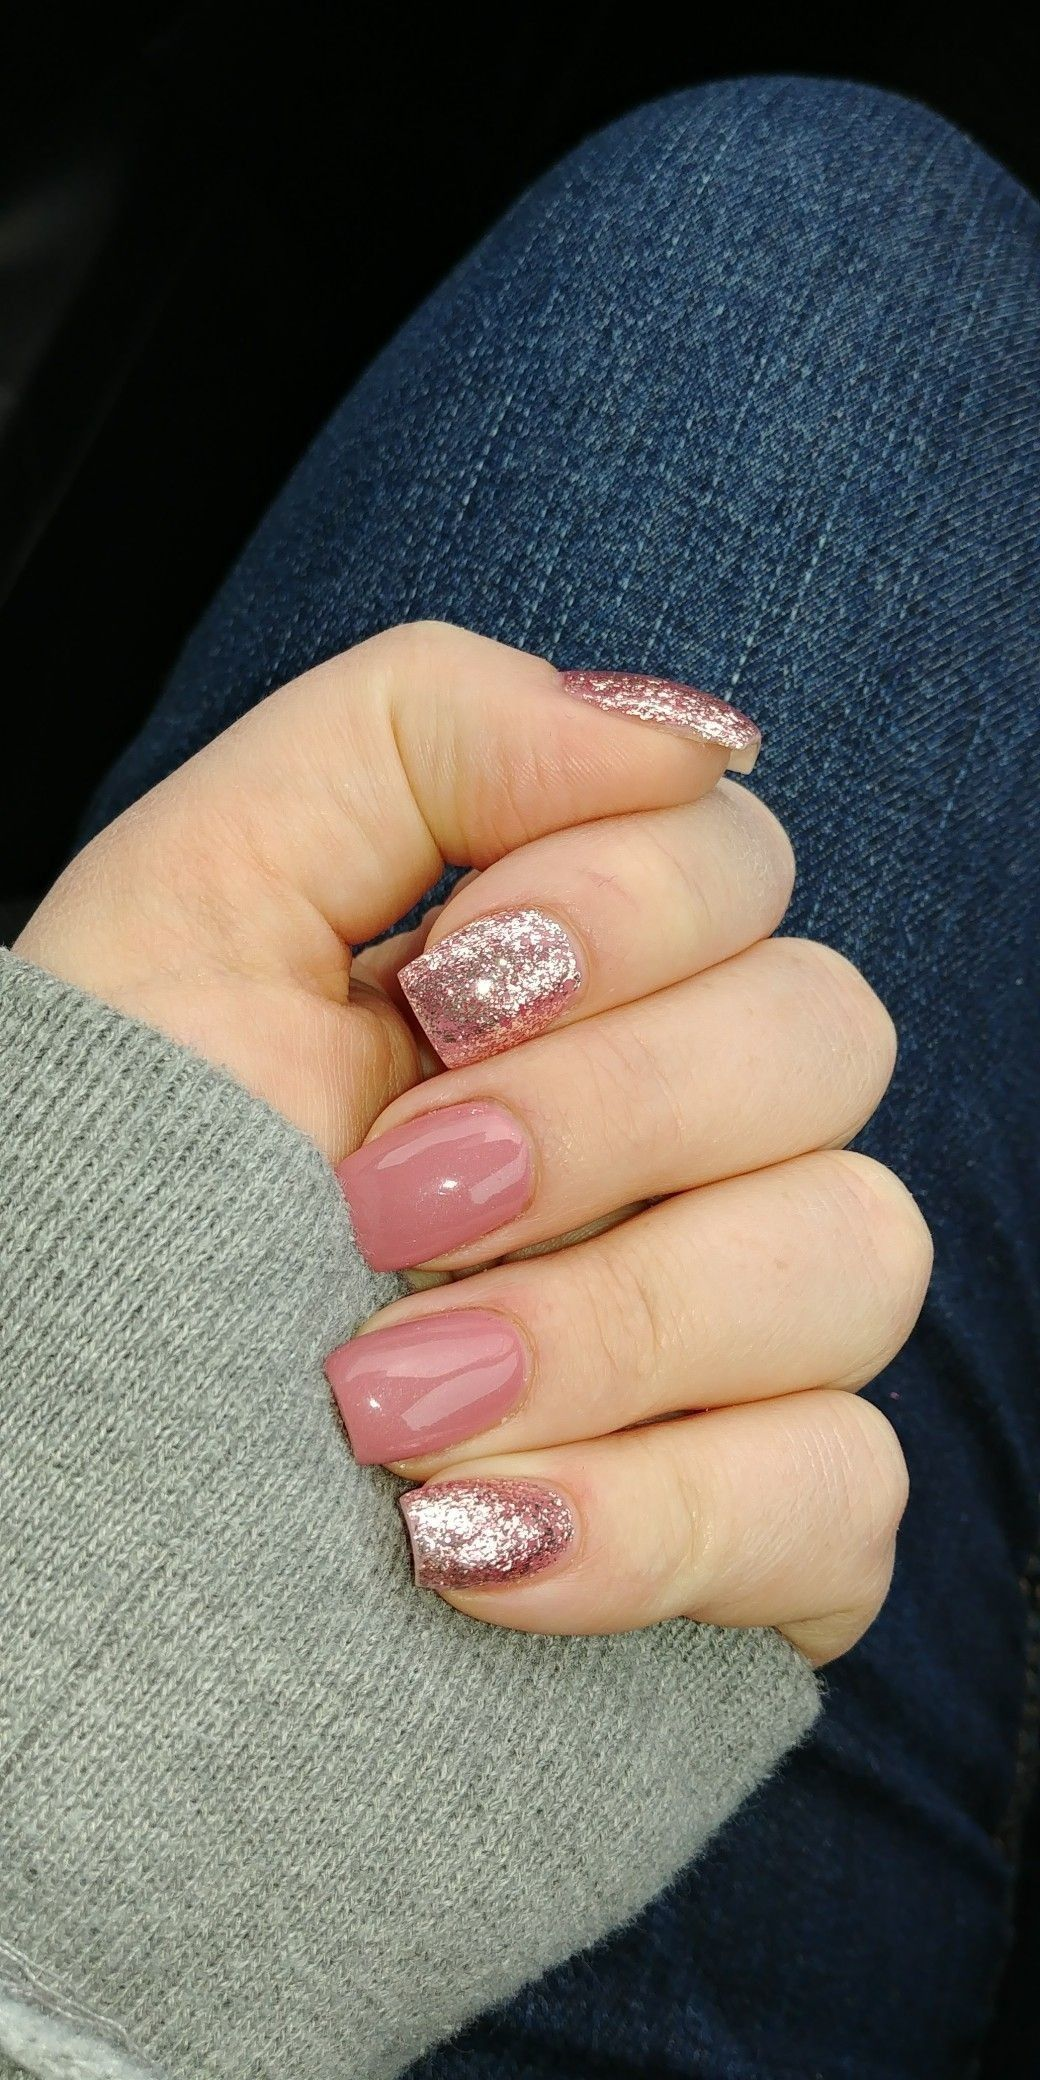 70 Simple Nail Design Ideas That Are Actually Easy Pink Nails Nail Designs Simple Nails